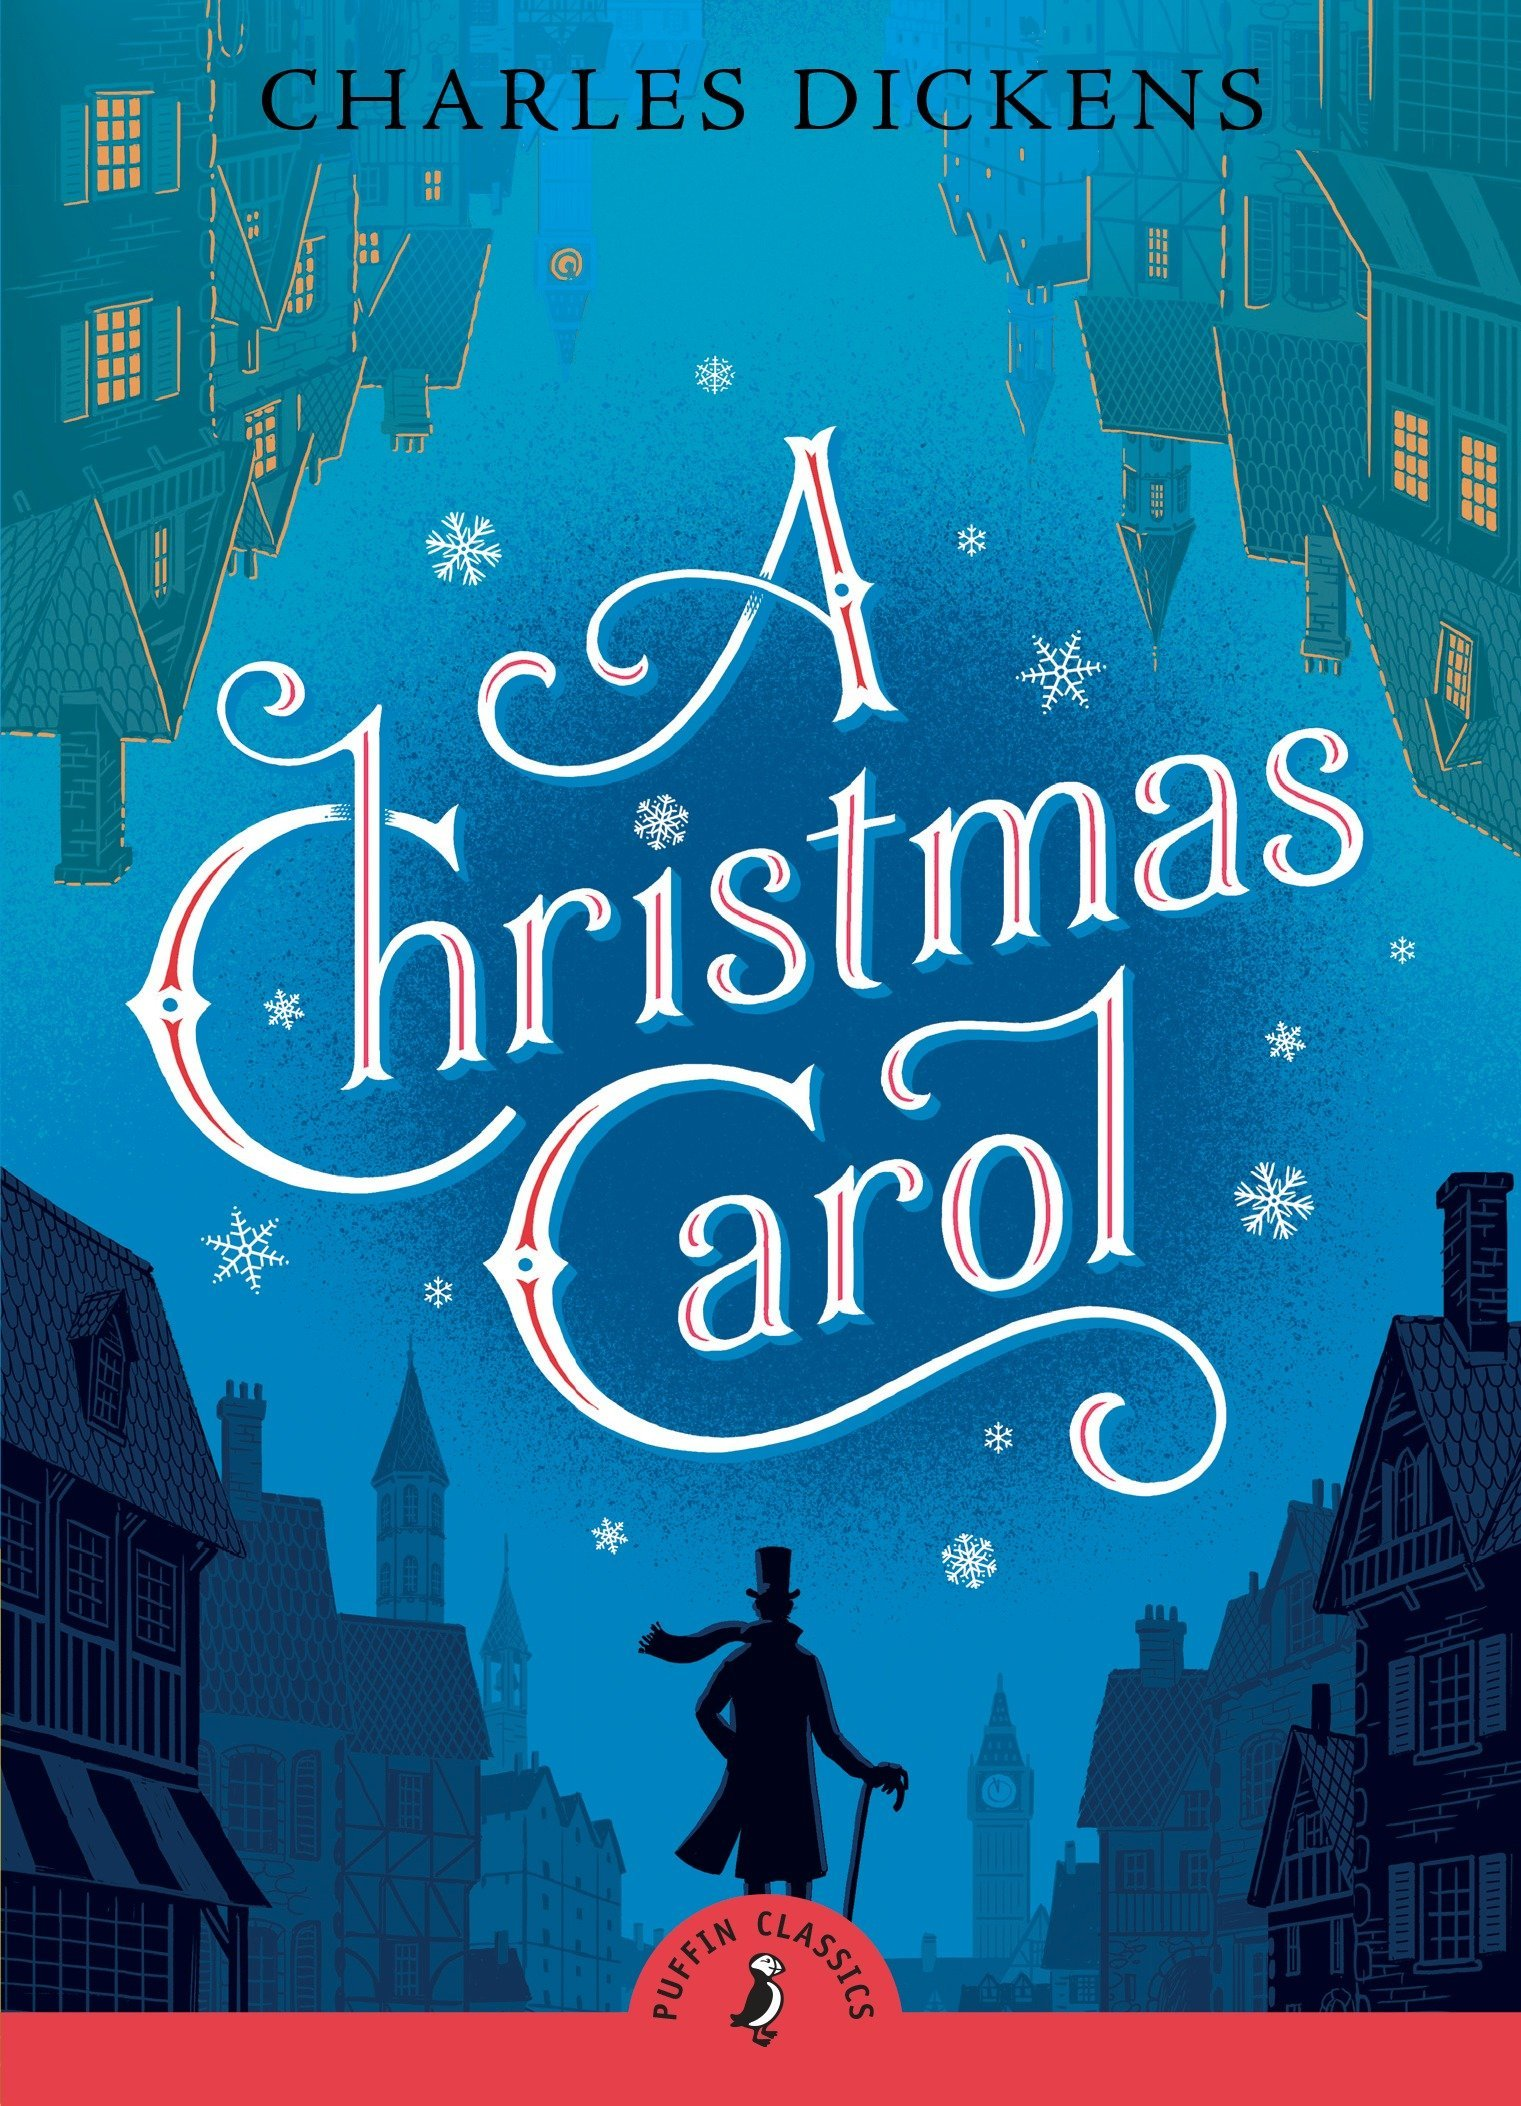 The Puffin Classics cover of A Christmas Carol, by Charles Dickens.  You see a lone silhouette at the bottom, wearing a long coat, a top hat, a flowing scarf, and holding a cane as he walks through a silhouetted Victorian city.  The buildings are arranged in a diamond pattern, bordering the book cover.  On the bottom are the black silhouettes of buildings arranged like staircases going down, meeting at the bottom of the cover.  At the top are green silhouettes of upside-down buildings with lit yellow windows, angled so the bottoms of the buildings meet at the top of the cover.  In the middle of the diamond is a blue night sky covered in snowflakes, as well as the title in large flourished red and white letters.